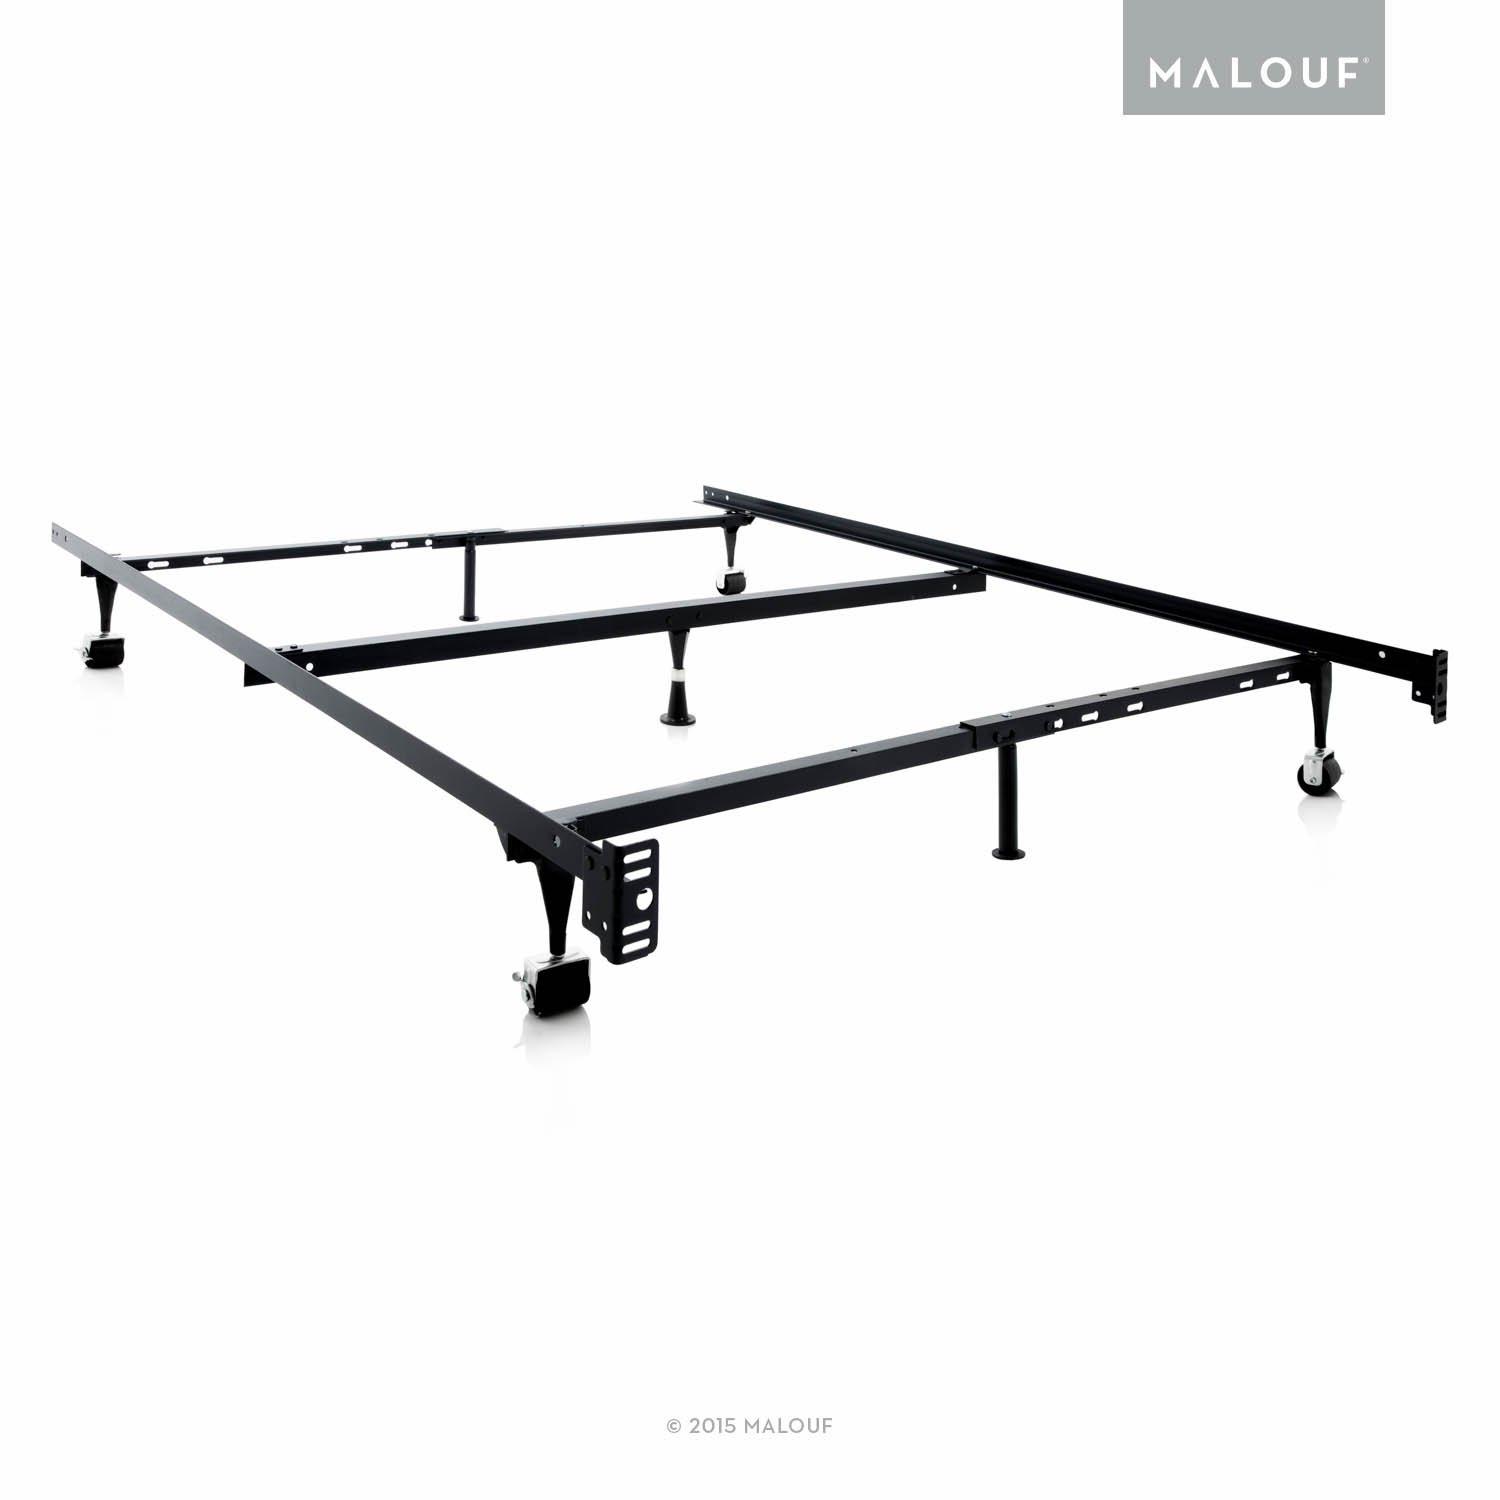 MALOUF STRUCTURES Heavy Duty Adjustable Metal Bed Frame with 7 Legs, Center Support and Glides Only - (Queen, Full XL, Full, Twin XL, Twin) ST5033GL